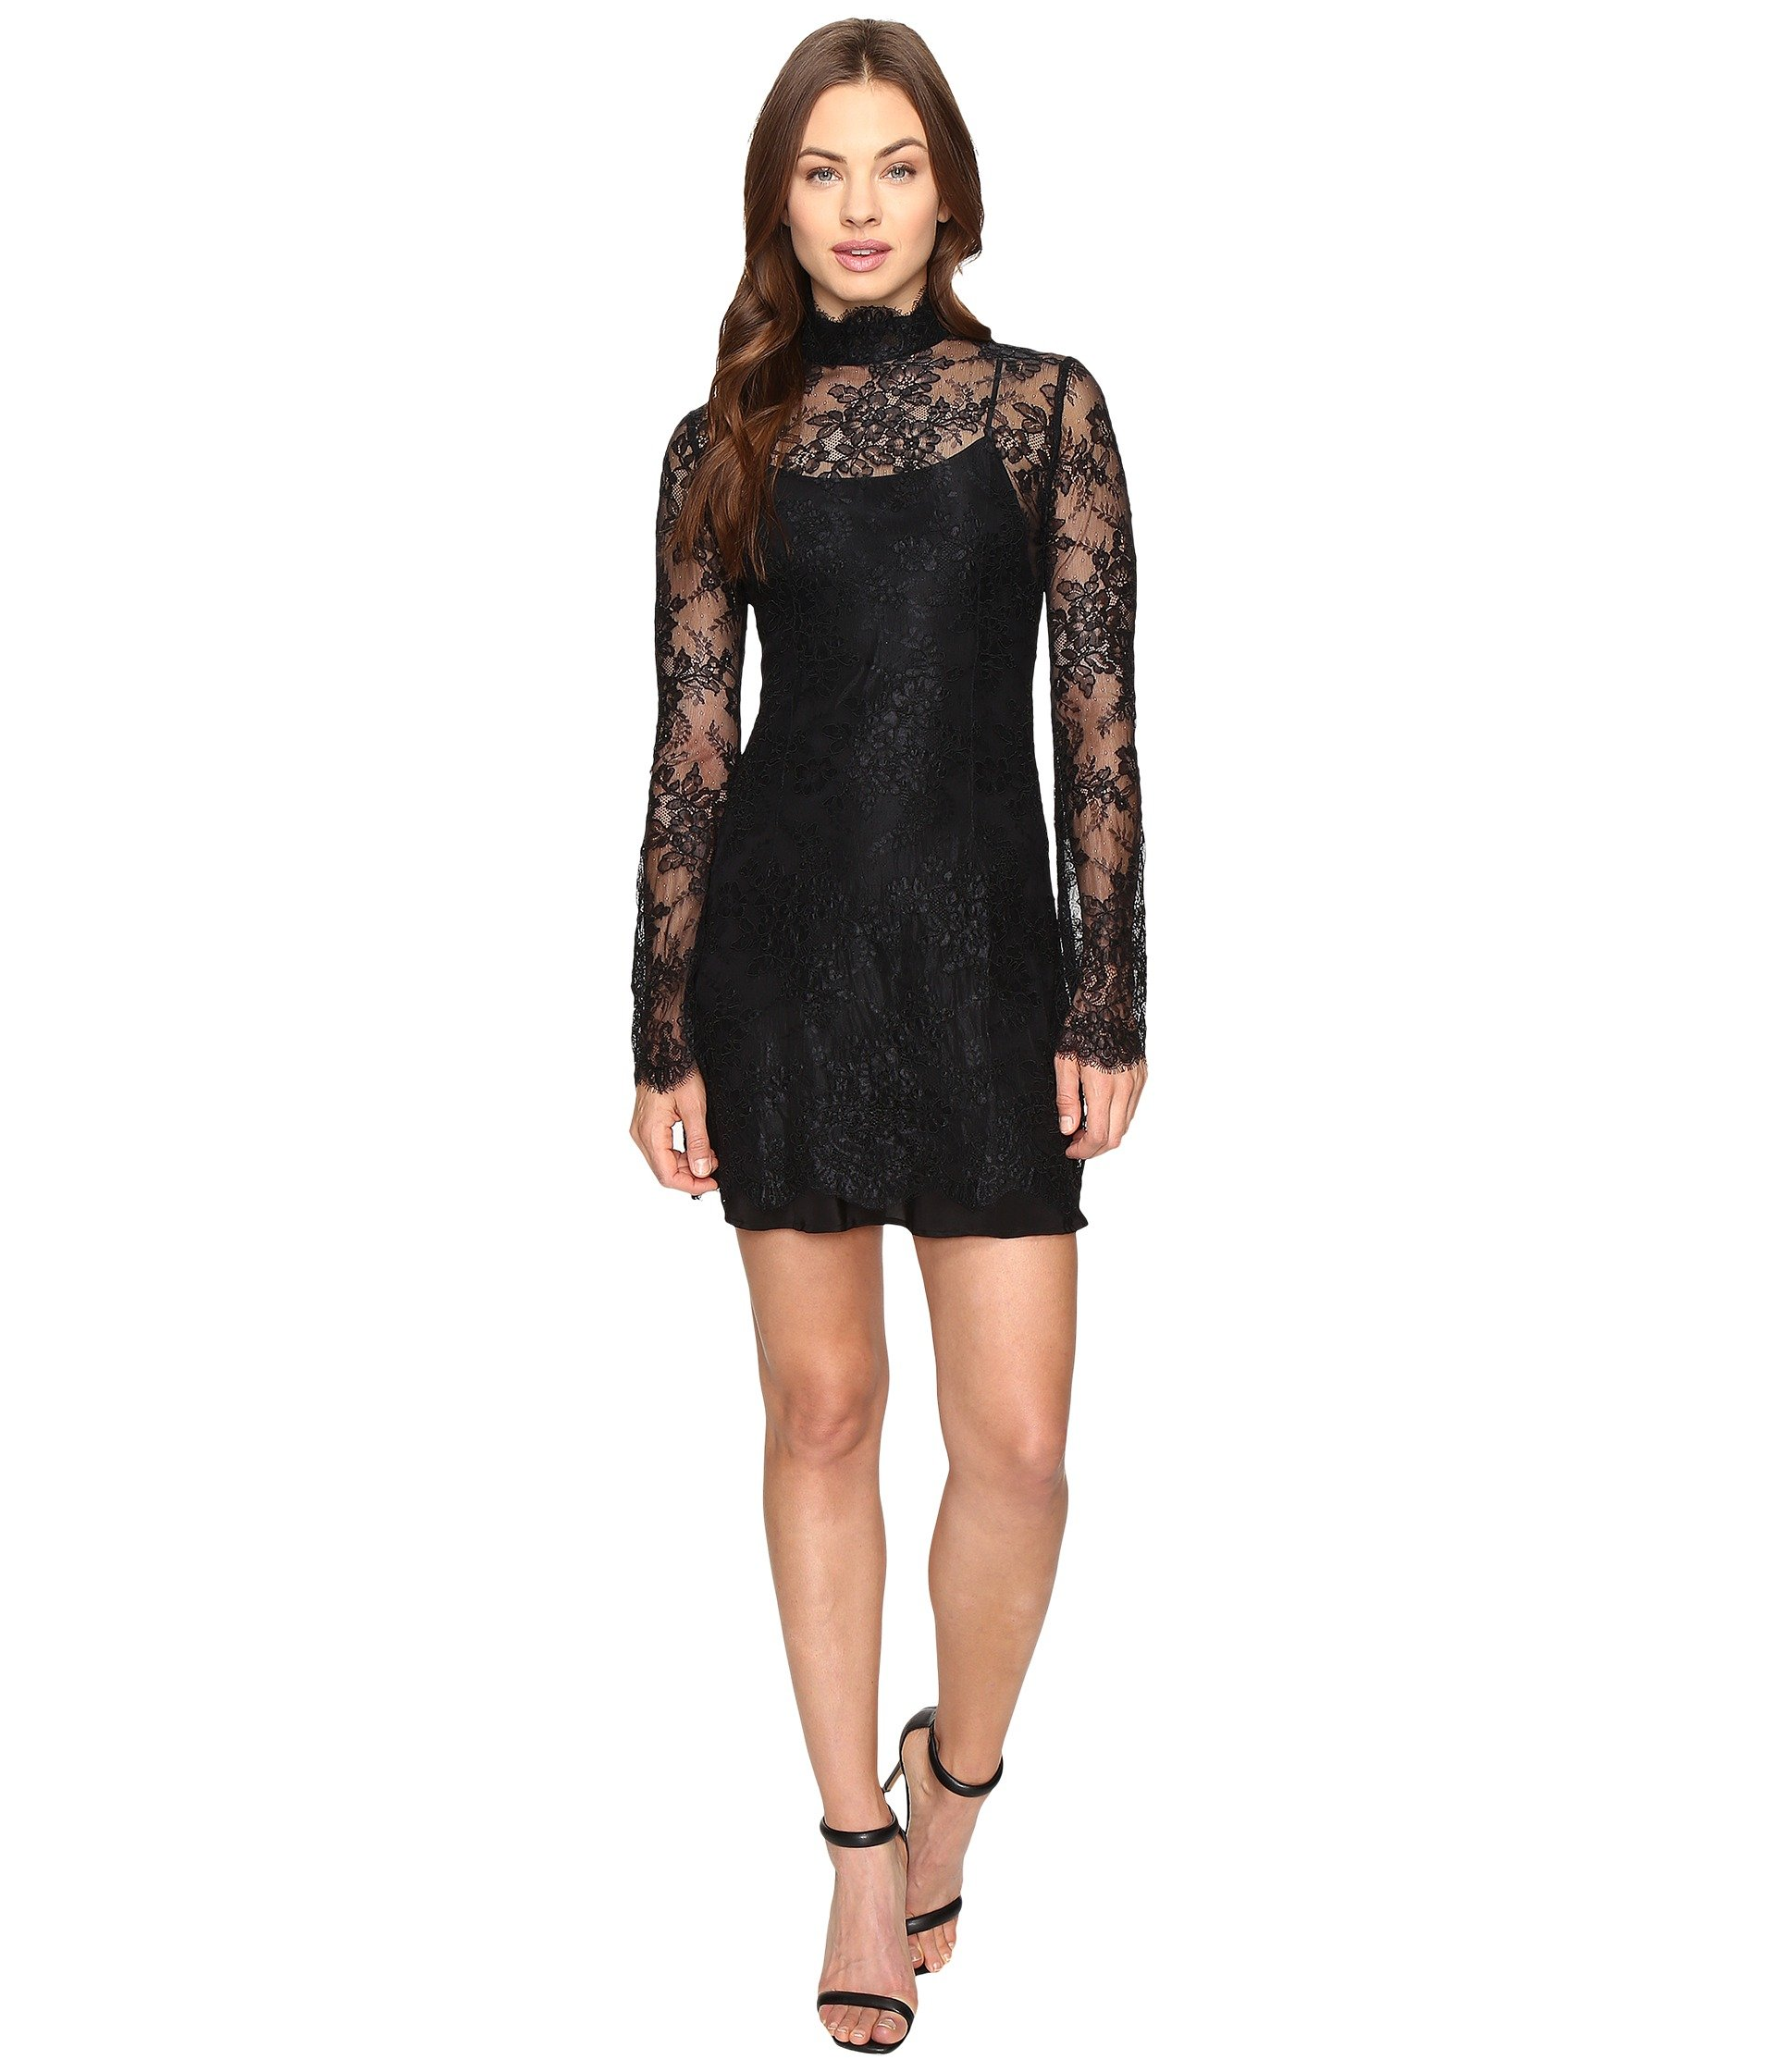 STONE COLD FOX Kerr Dress, Black